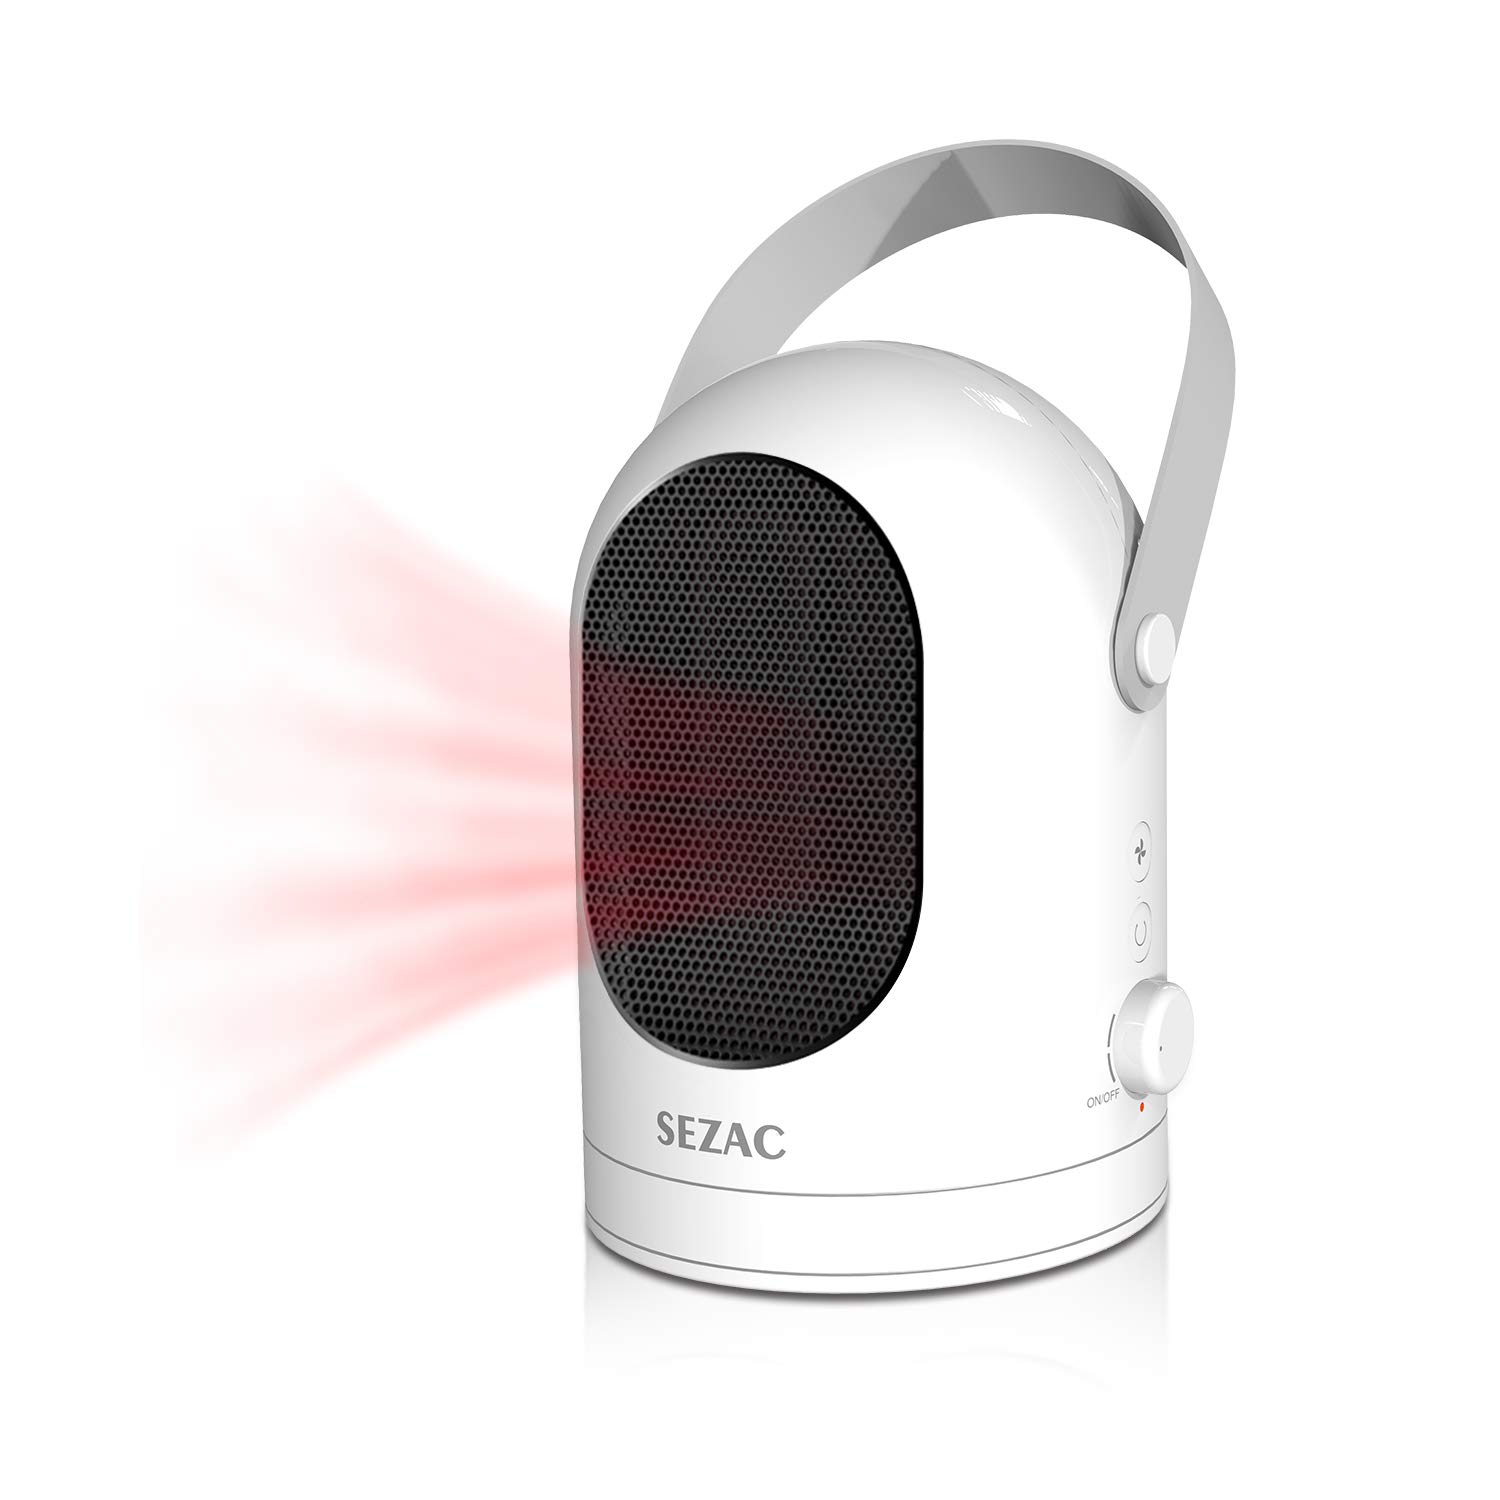 [2018 Newest] SEZAC Personal Space Heater, Oscillating Fan Heater, Portable Ceramic Heater, 600W Mini Space Heater with Warm and Natural Wind for Home, Office, Desktop, Bedroom (White)